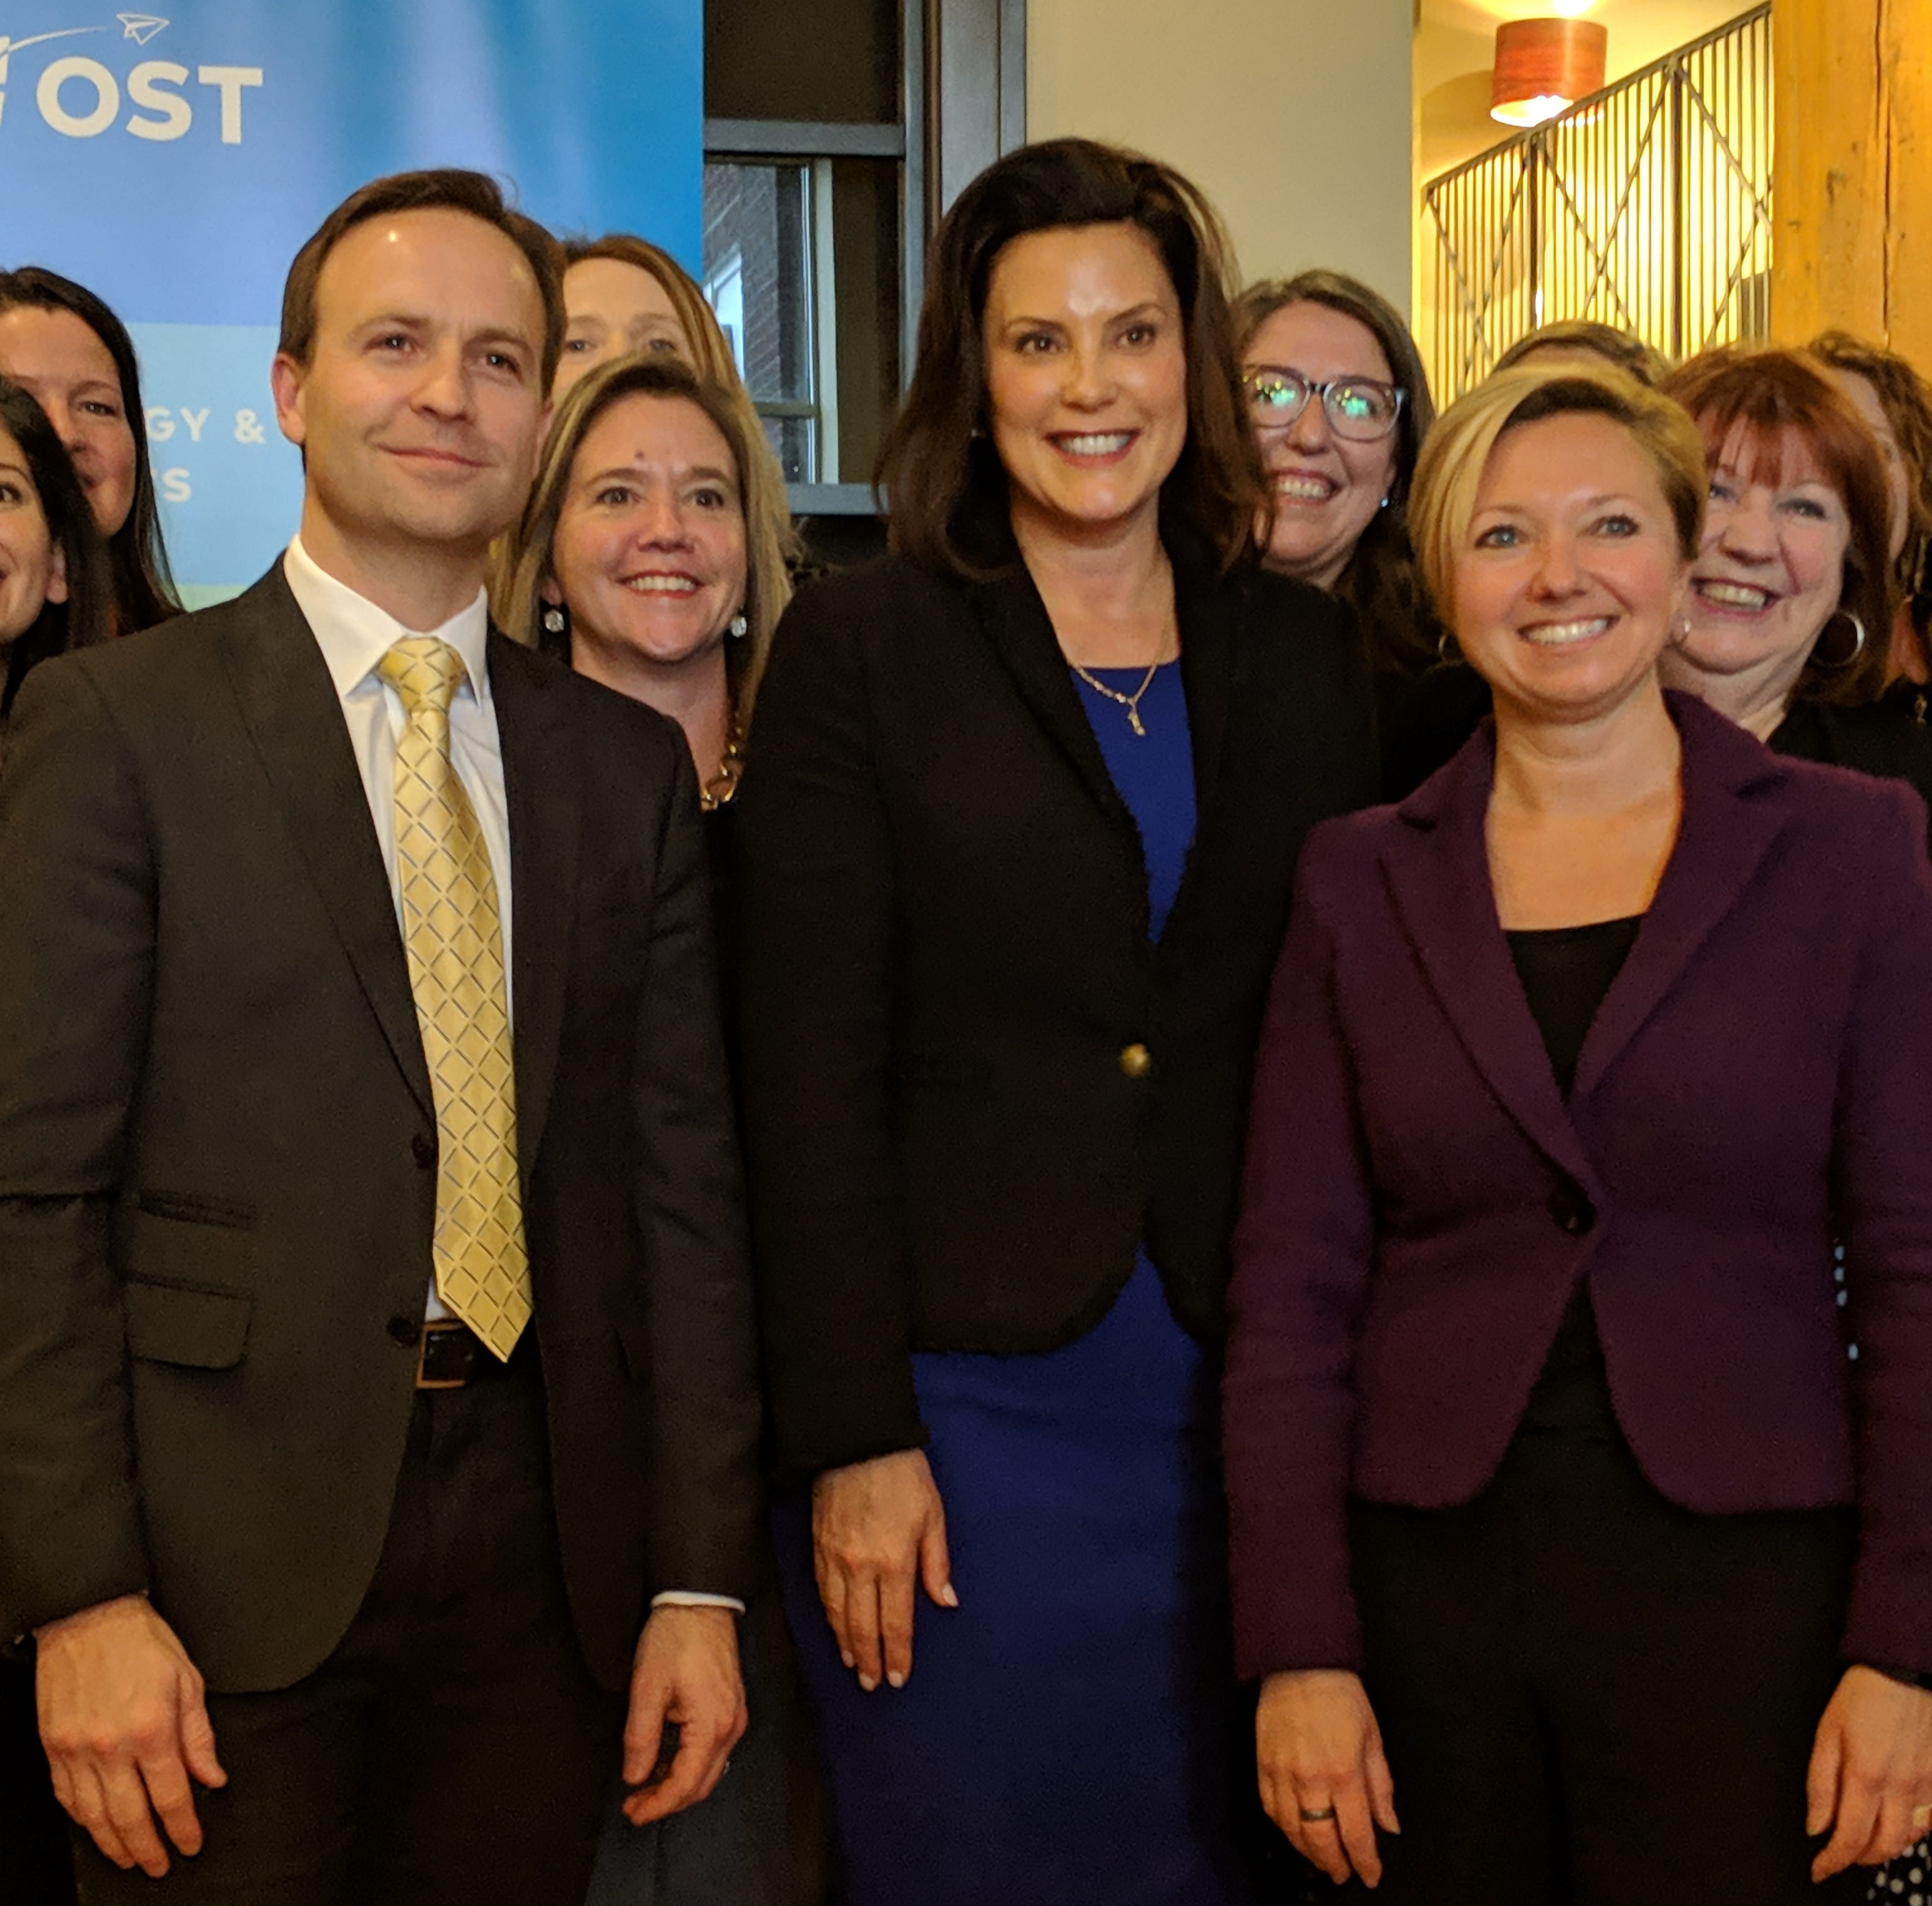 Whitmer gives Calley a ride to work